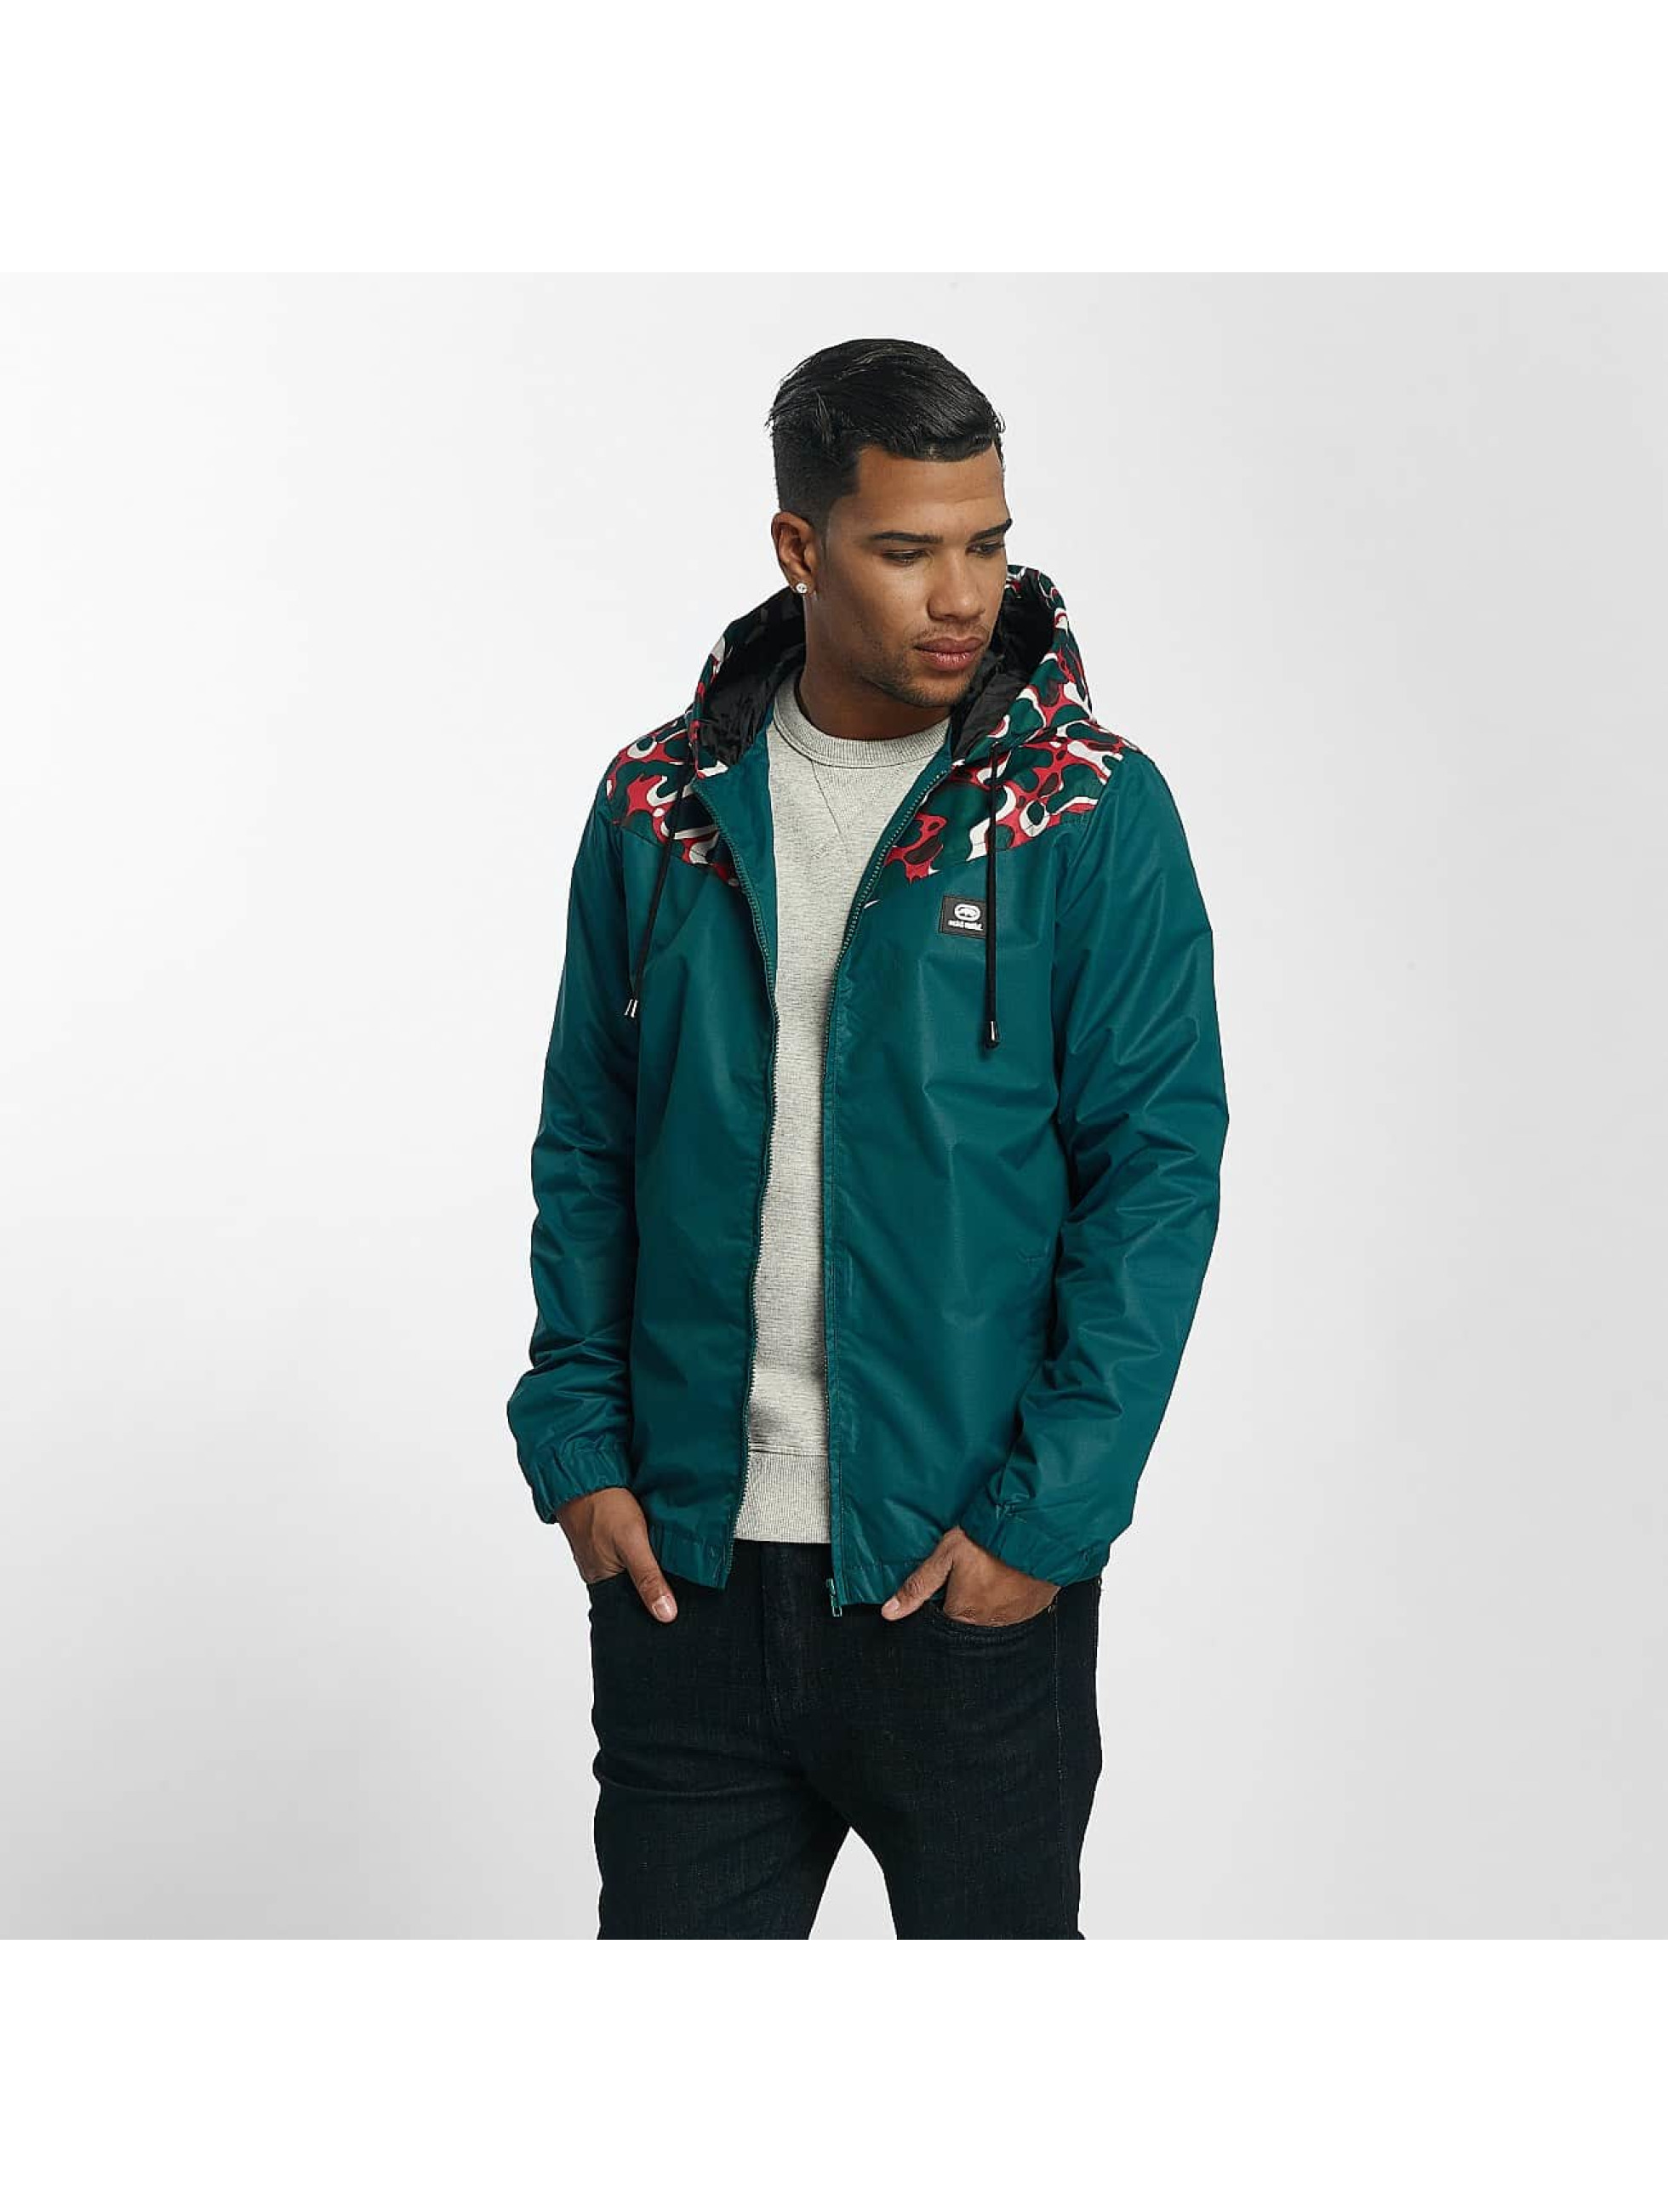 Ecko Unltd. / Lightweight Jacket Tony Tornado in turquoise XL